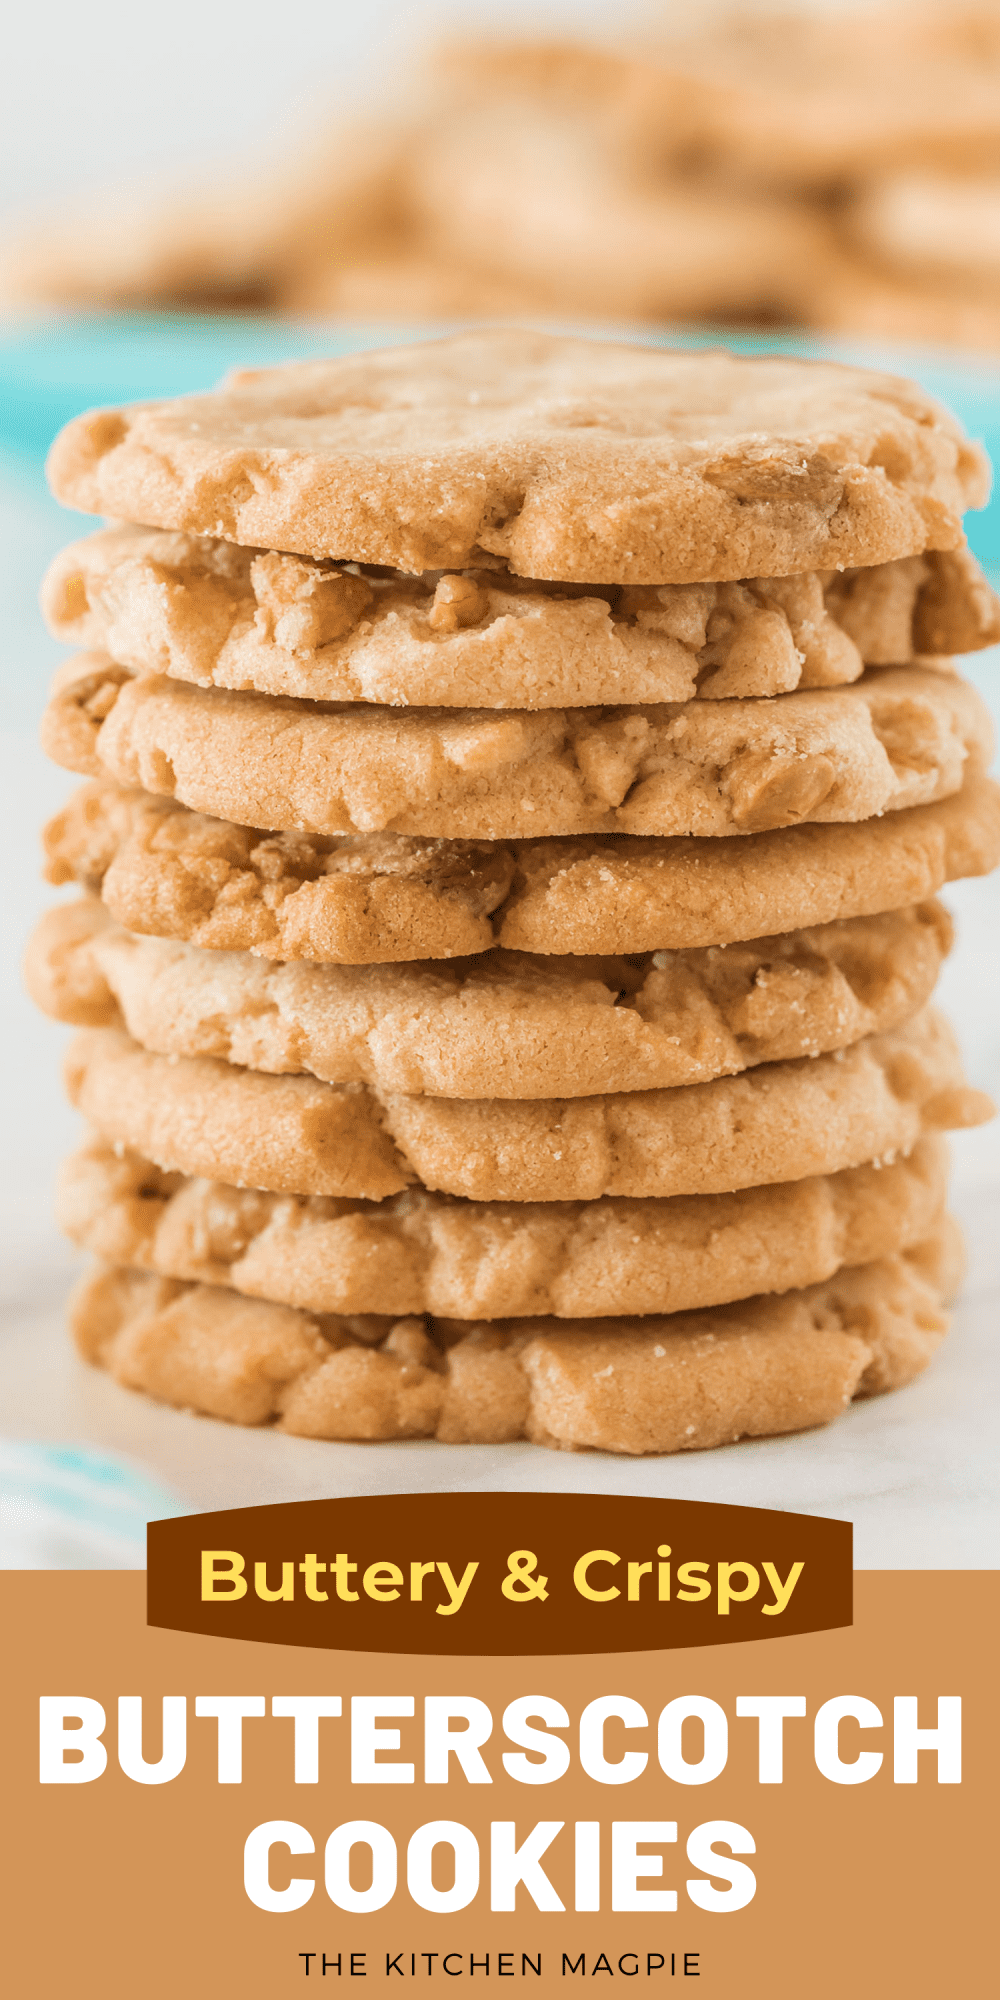 Buttery, crispy and delicious butterscotch cookies! These are for the crispy cookie lovers who also have a major sweet tooth, they are very sweet with the butterscotch morsels in them!